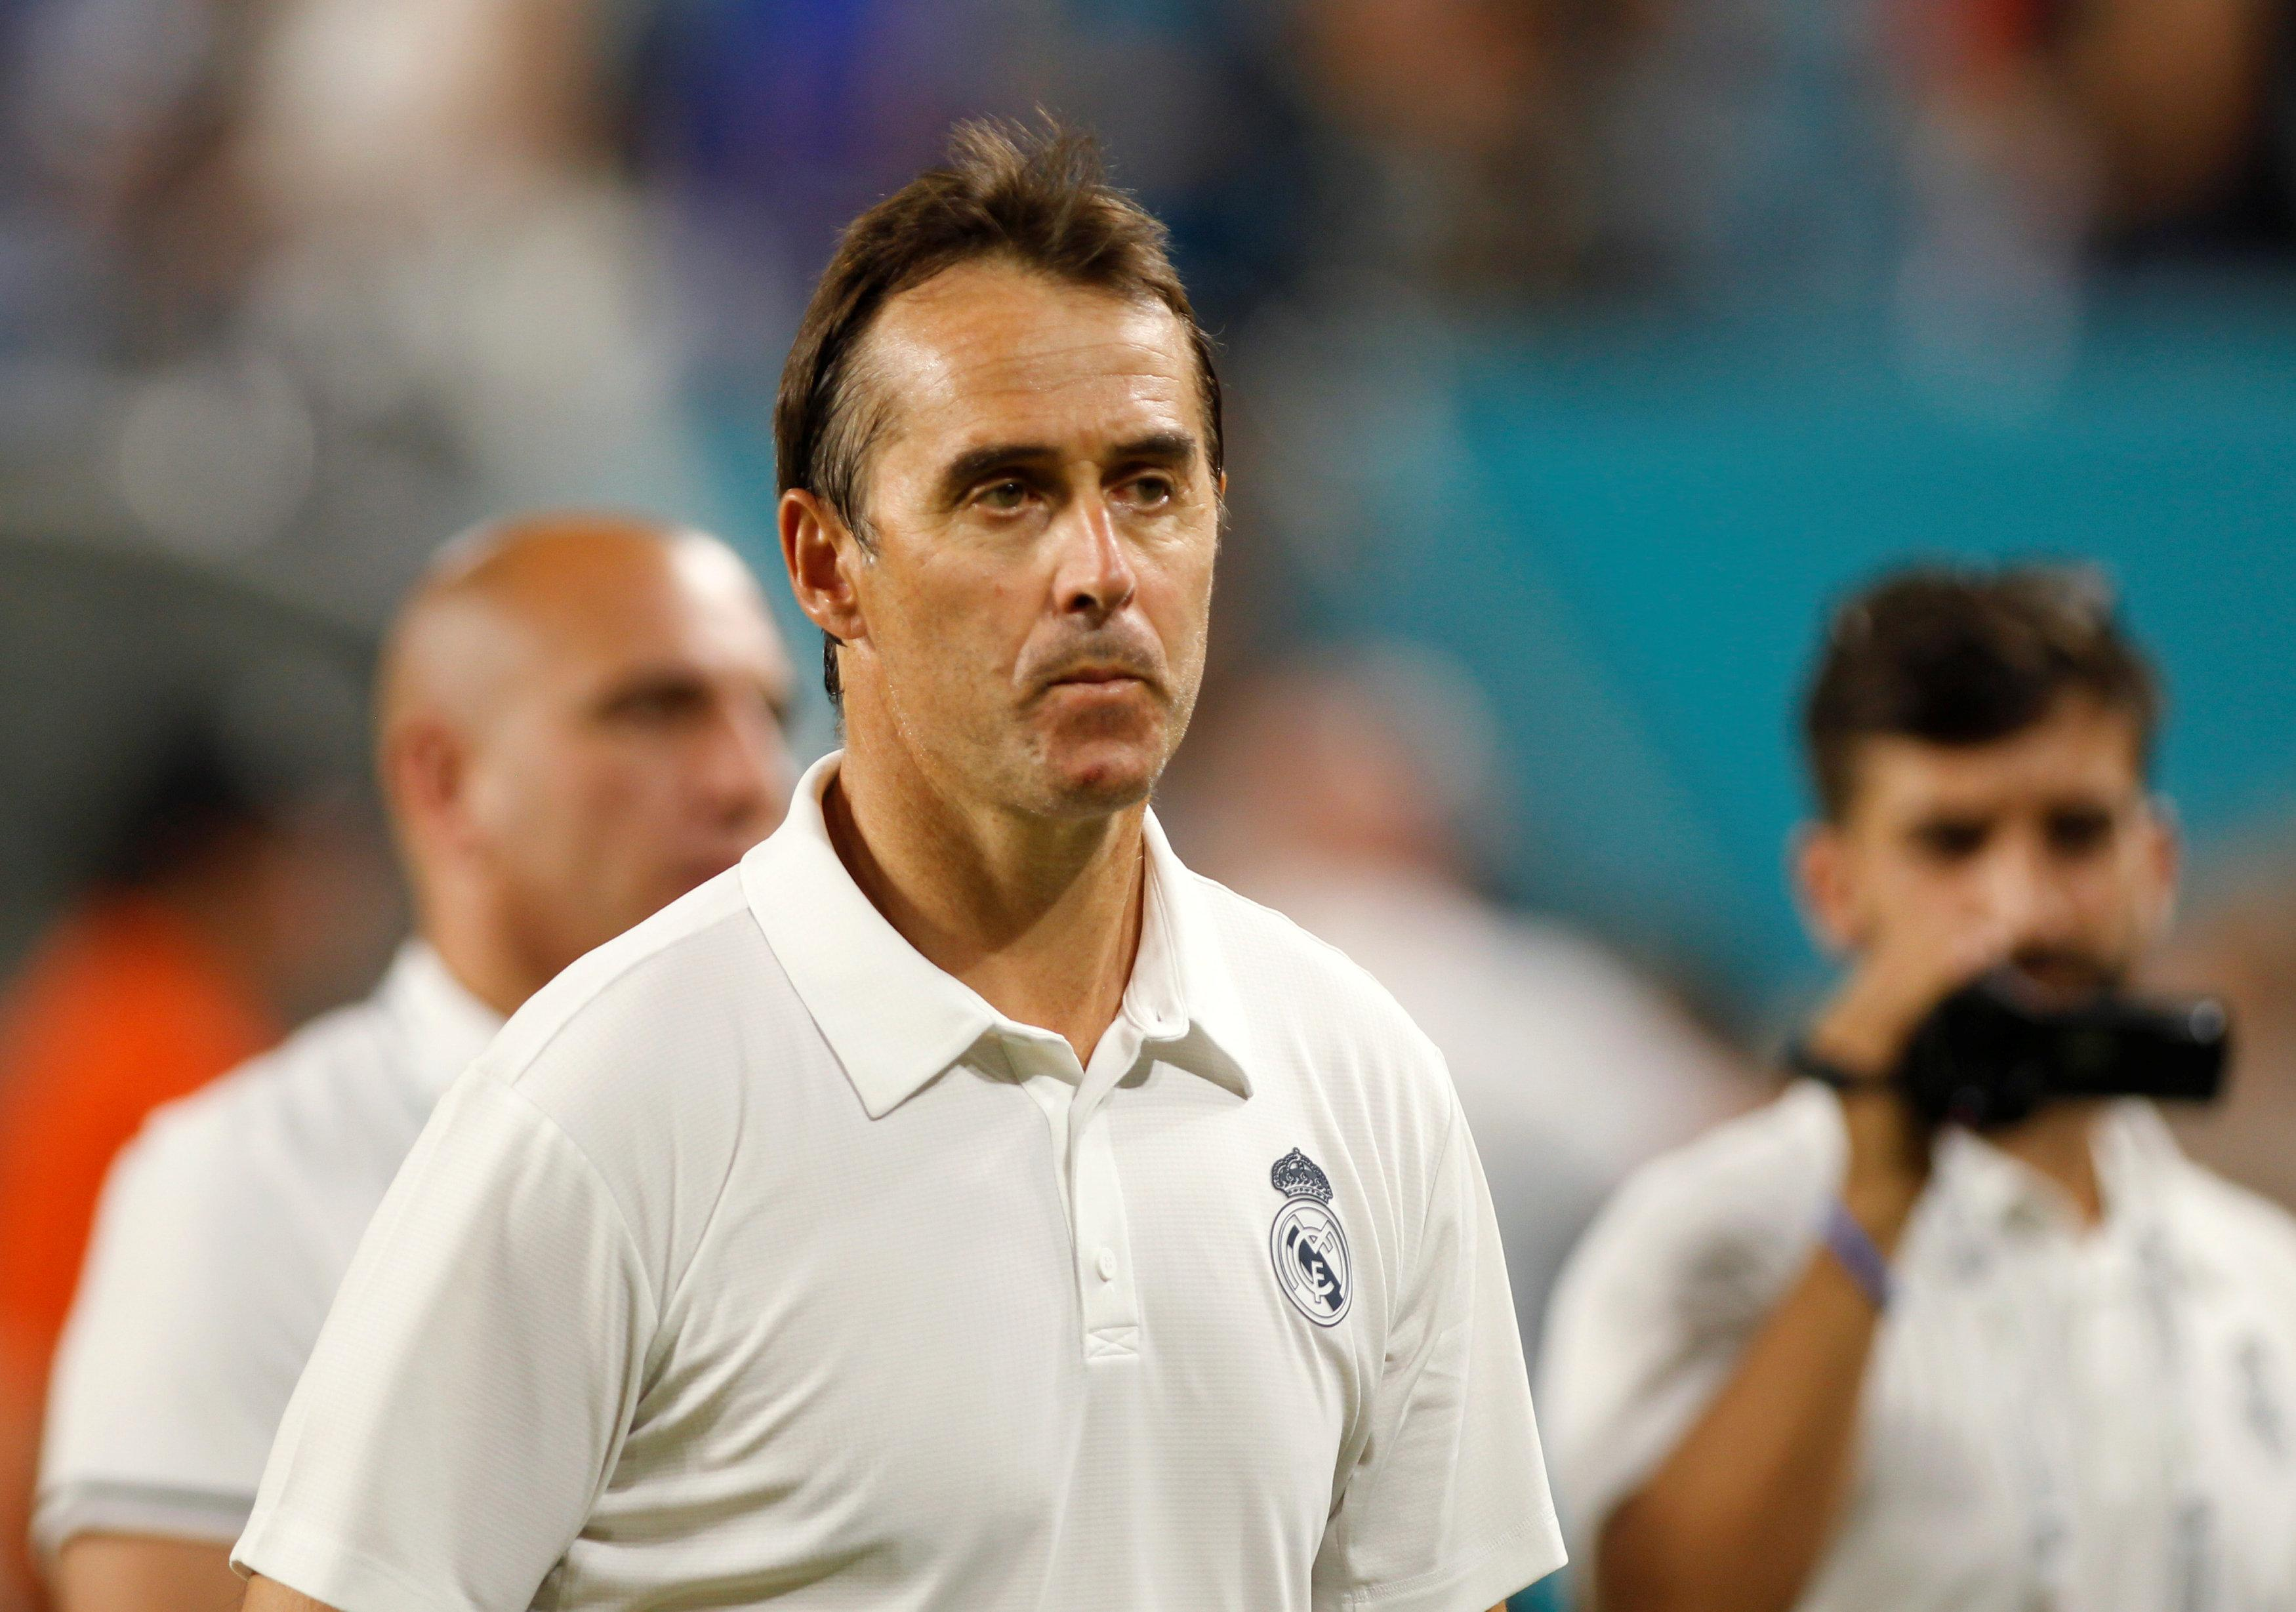 Julen Lopetegui's side are busy warming up for the new season which starts on August 18